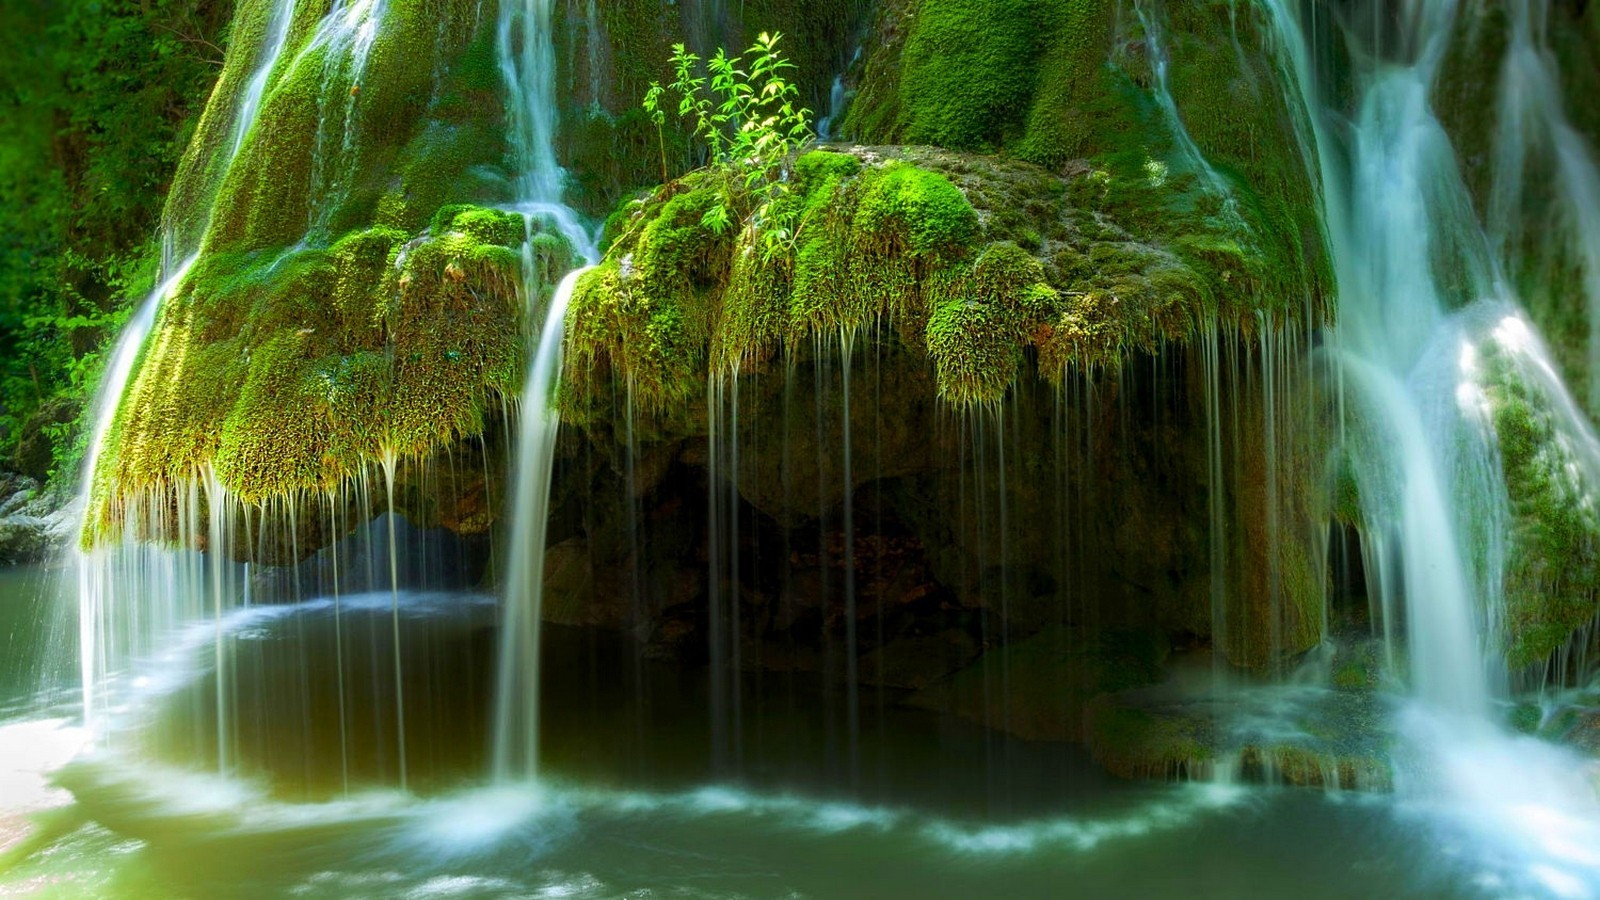 3d Live Wallpaper Download Pc Nature Landscape Waterfall Moss River Green Long